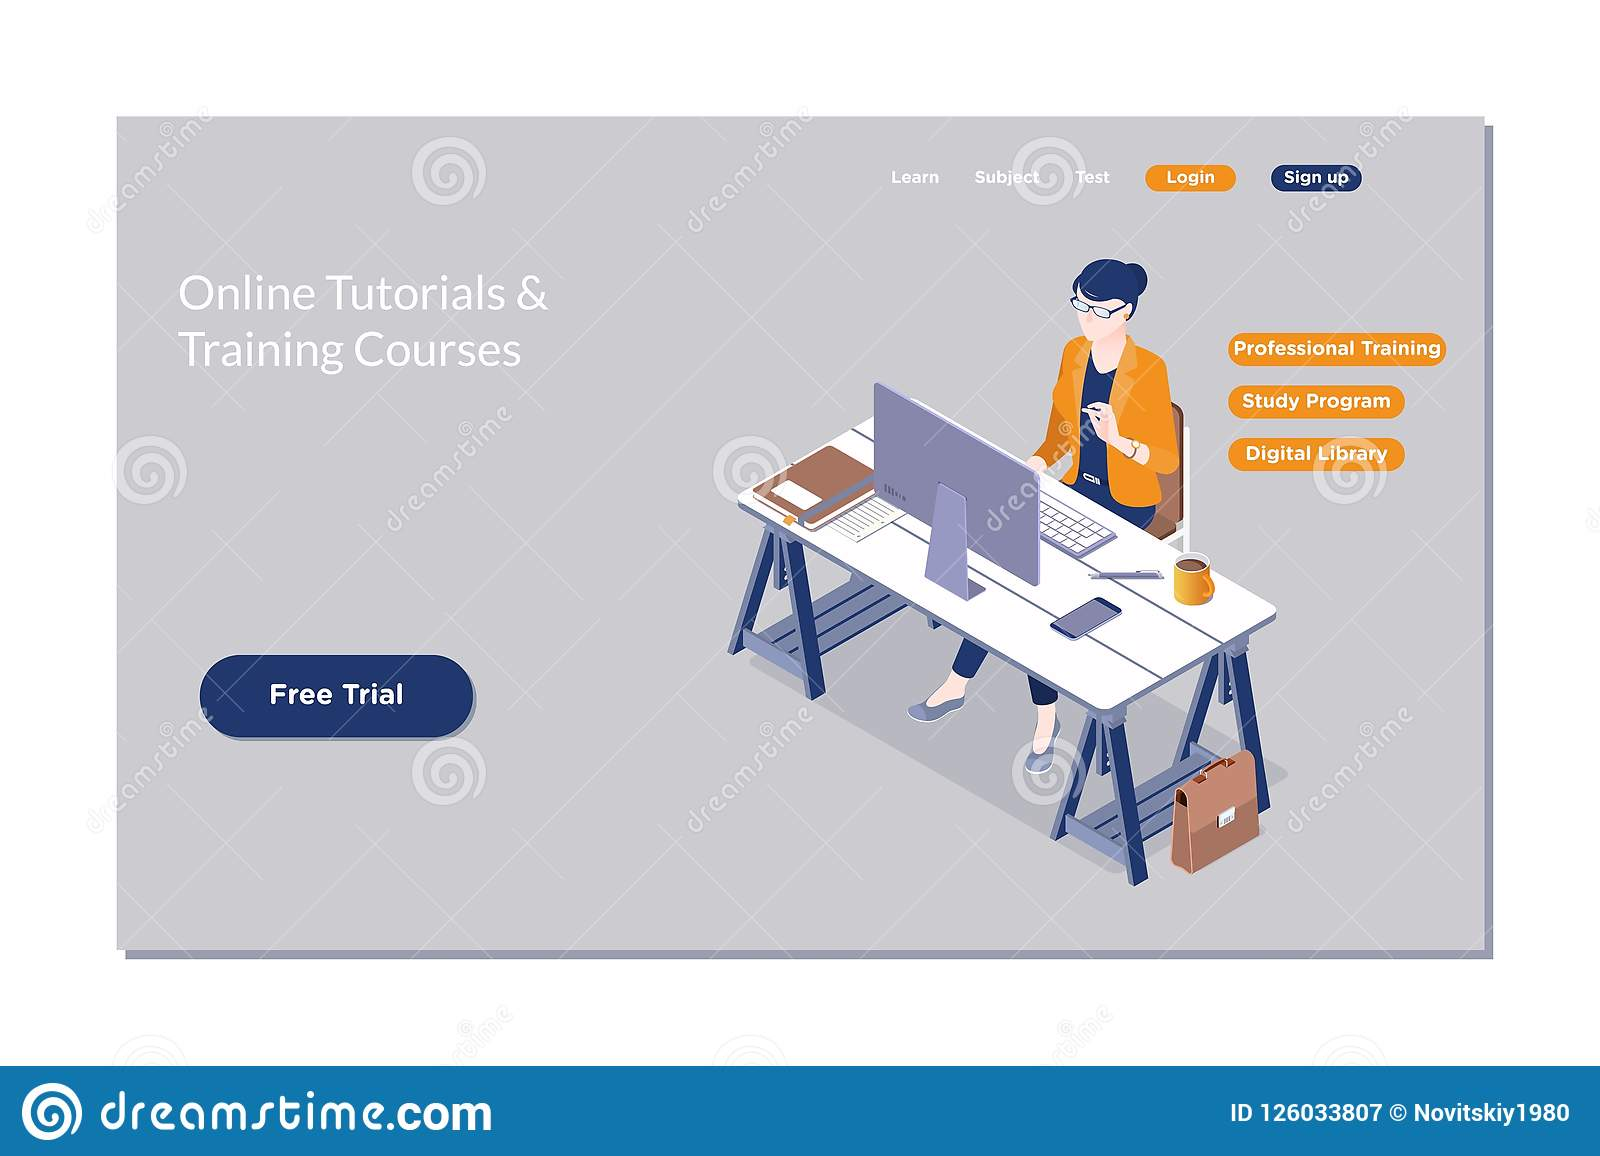 Online Training, Workshops And Courses Visualization